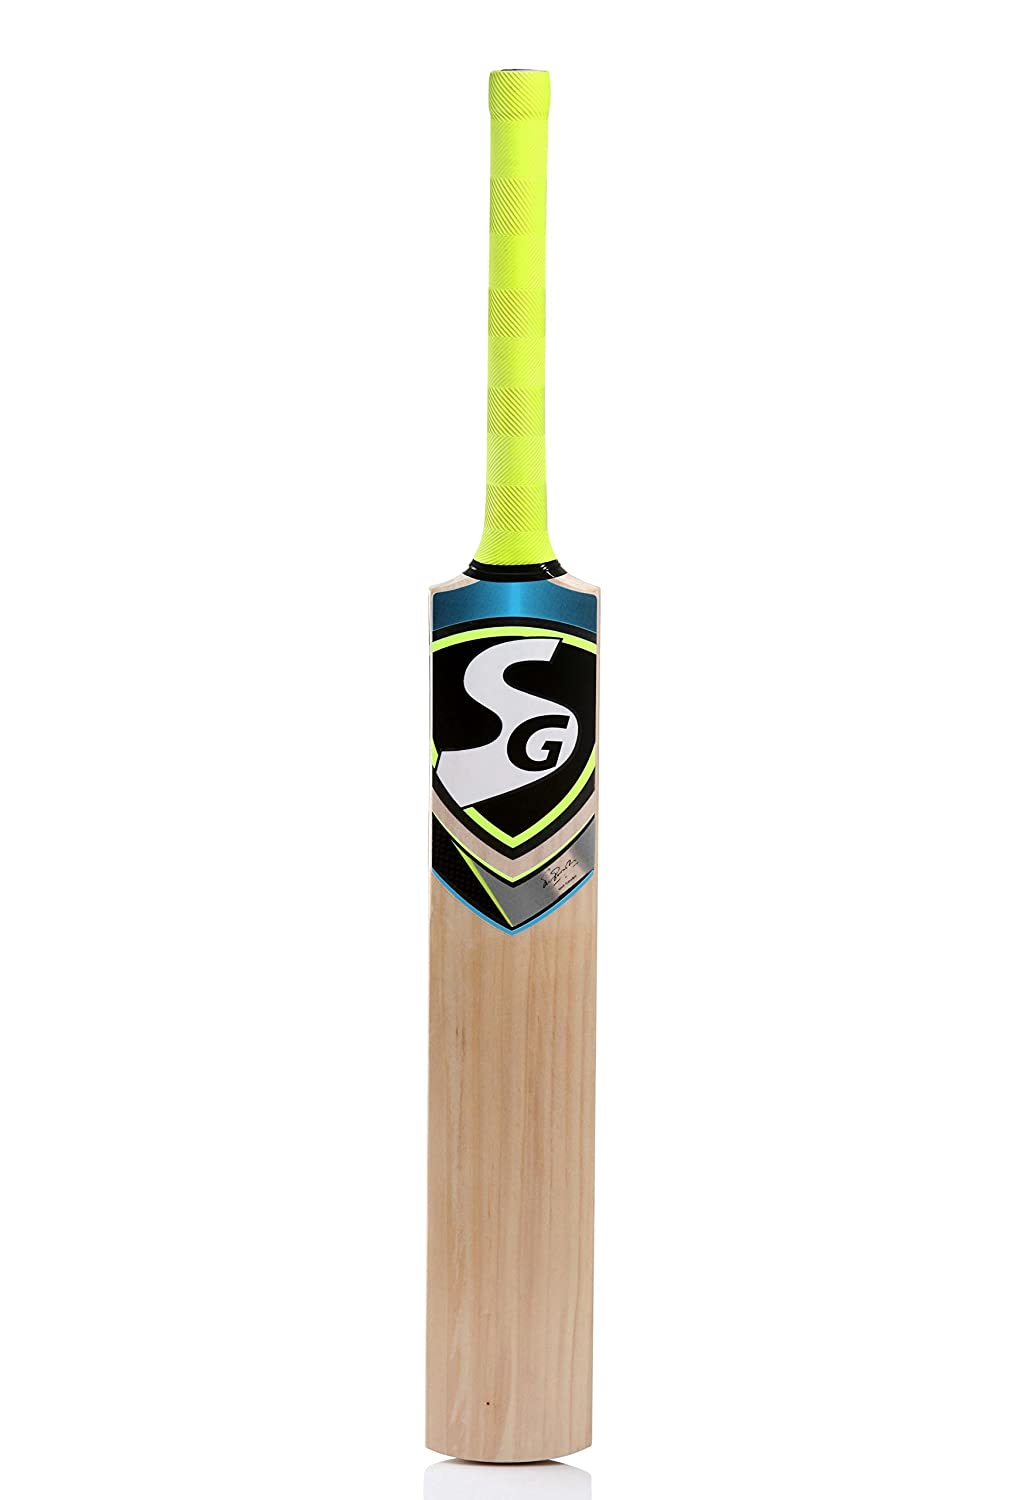 sg nexus plus kashmir willow cricket bat color may vary amazon